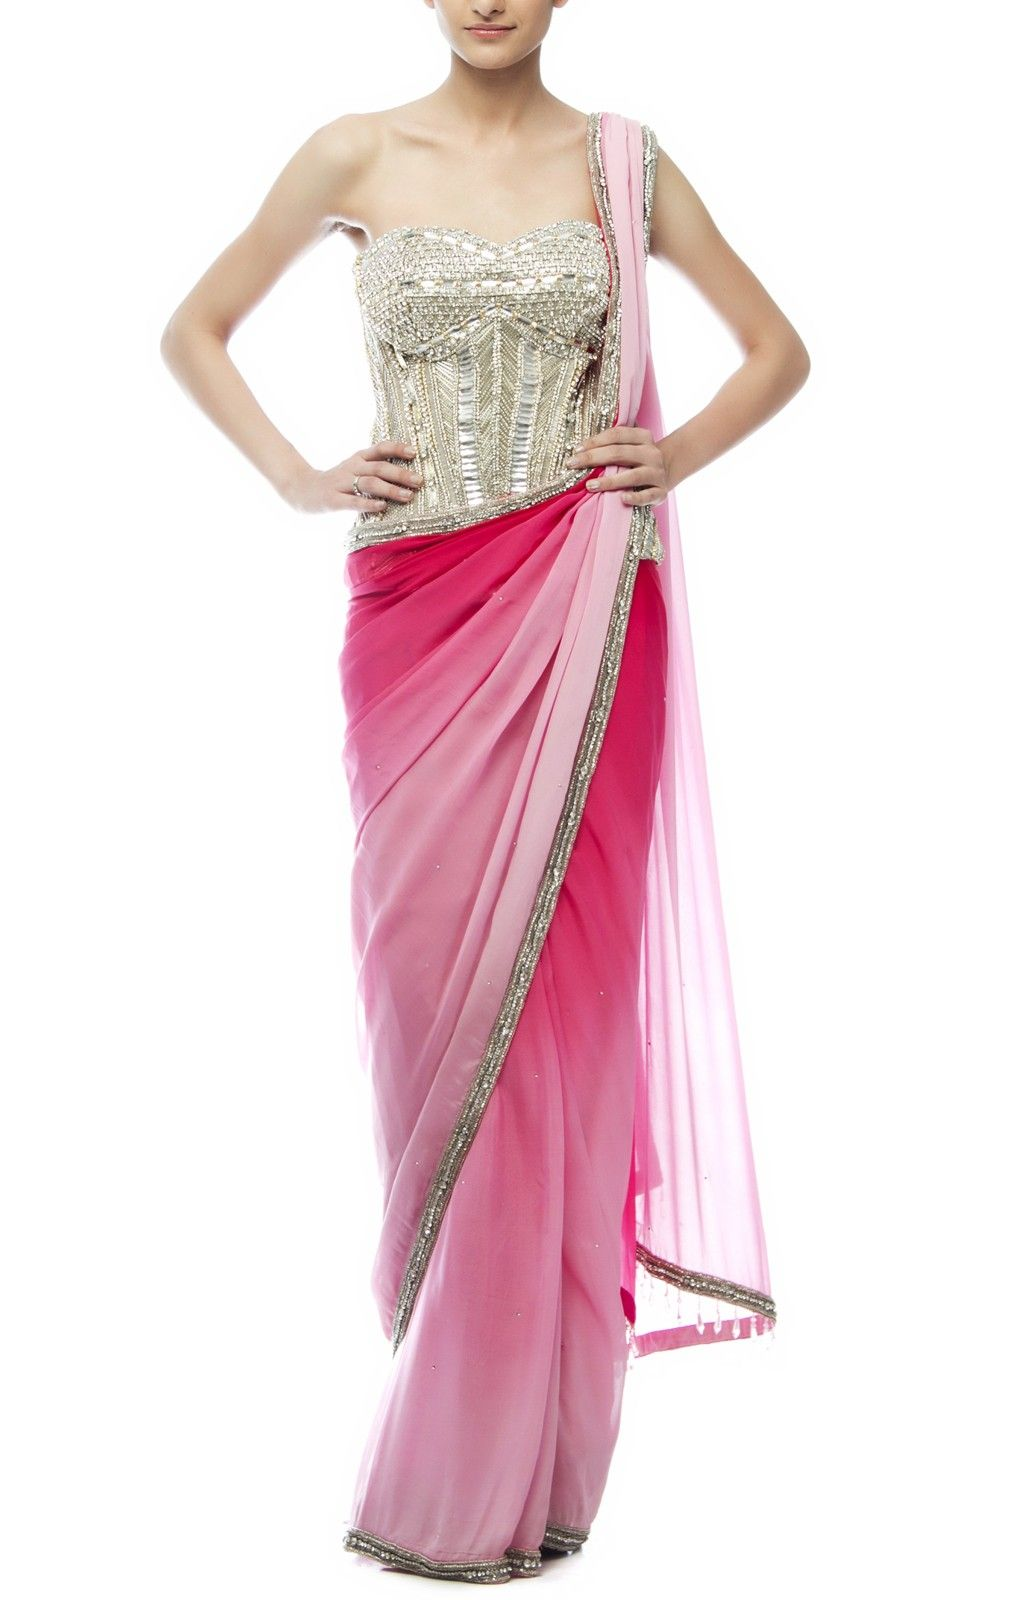 Pink Georgette #Saree with Silver #Dimante #Corset. | saree | Pinterest